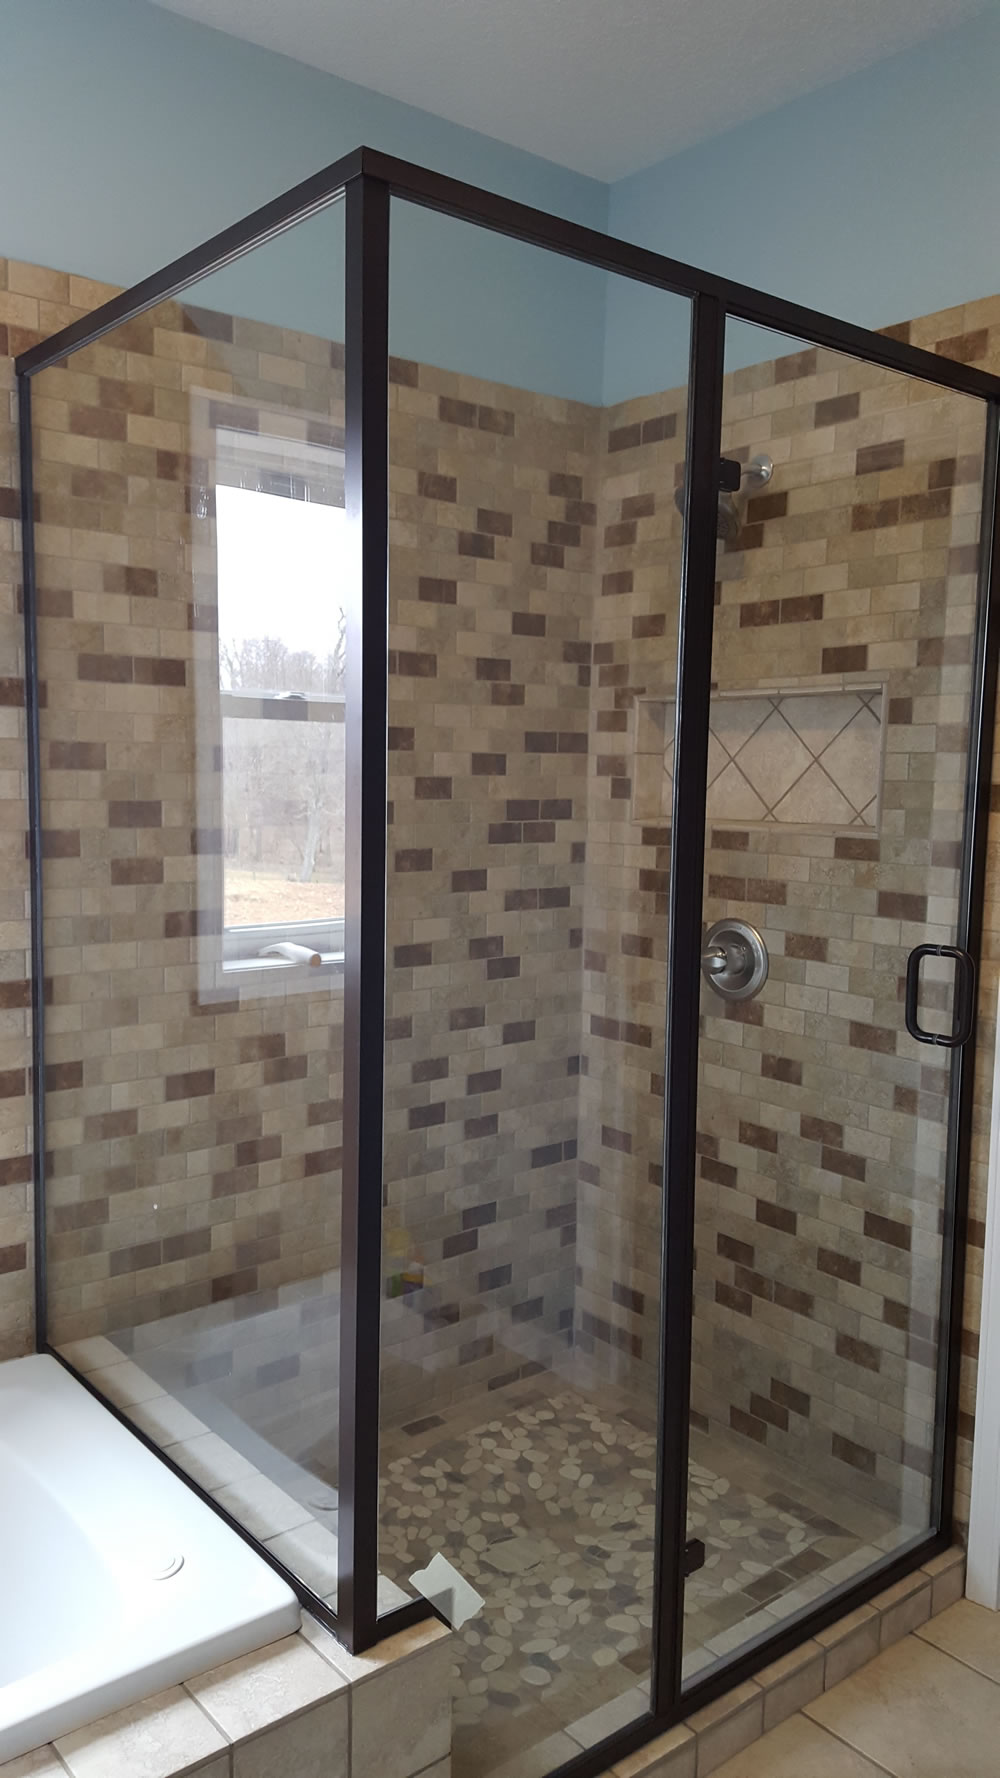 ... shower-00005. Richardson Glass Service & Shower Doors - Richardson Glass Service